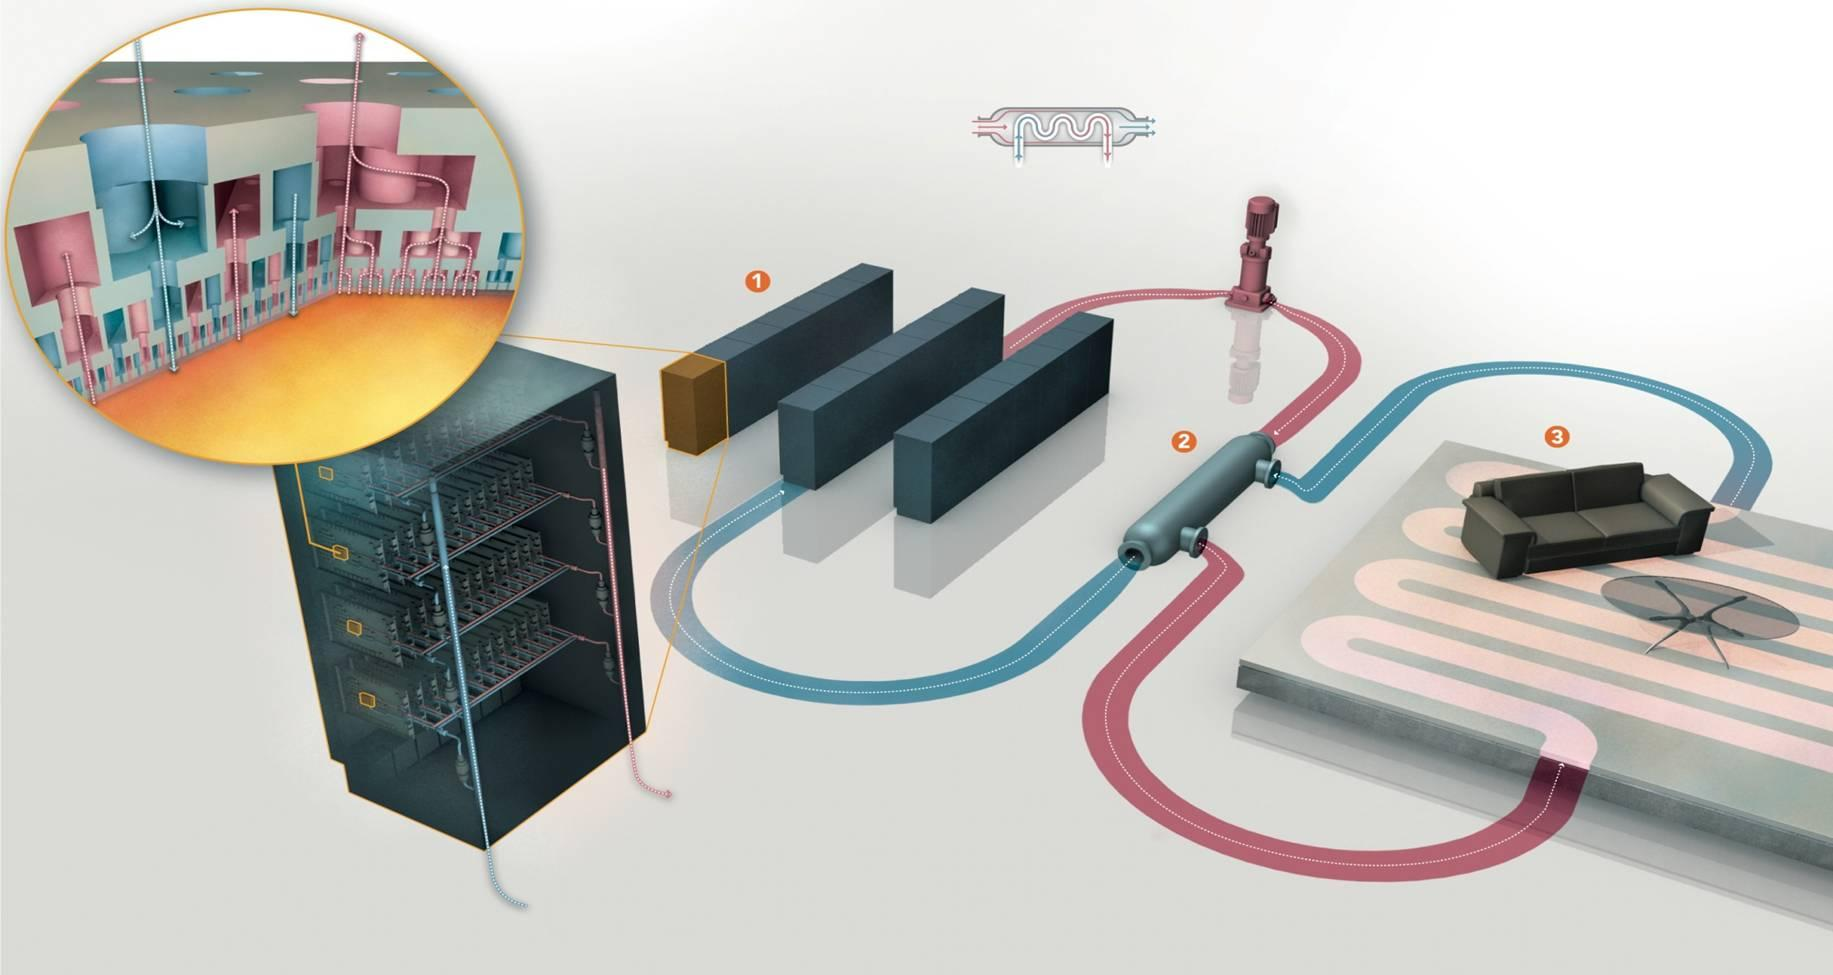 Vision des Aquasar-Projekts: The Zero-Emission-Datacenter 65